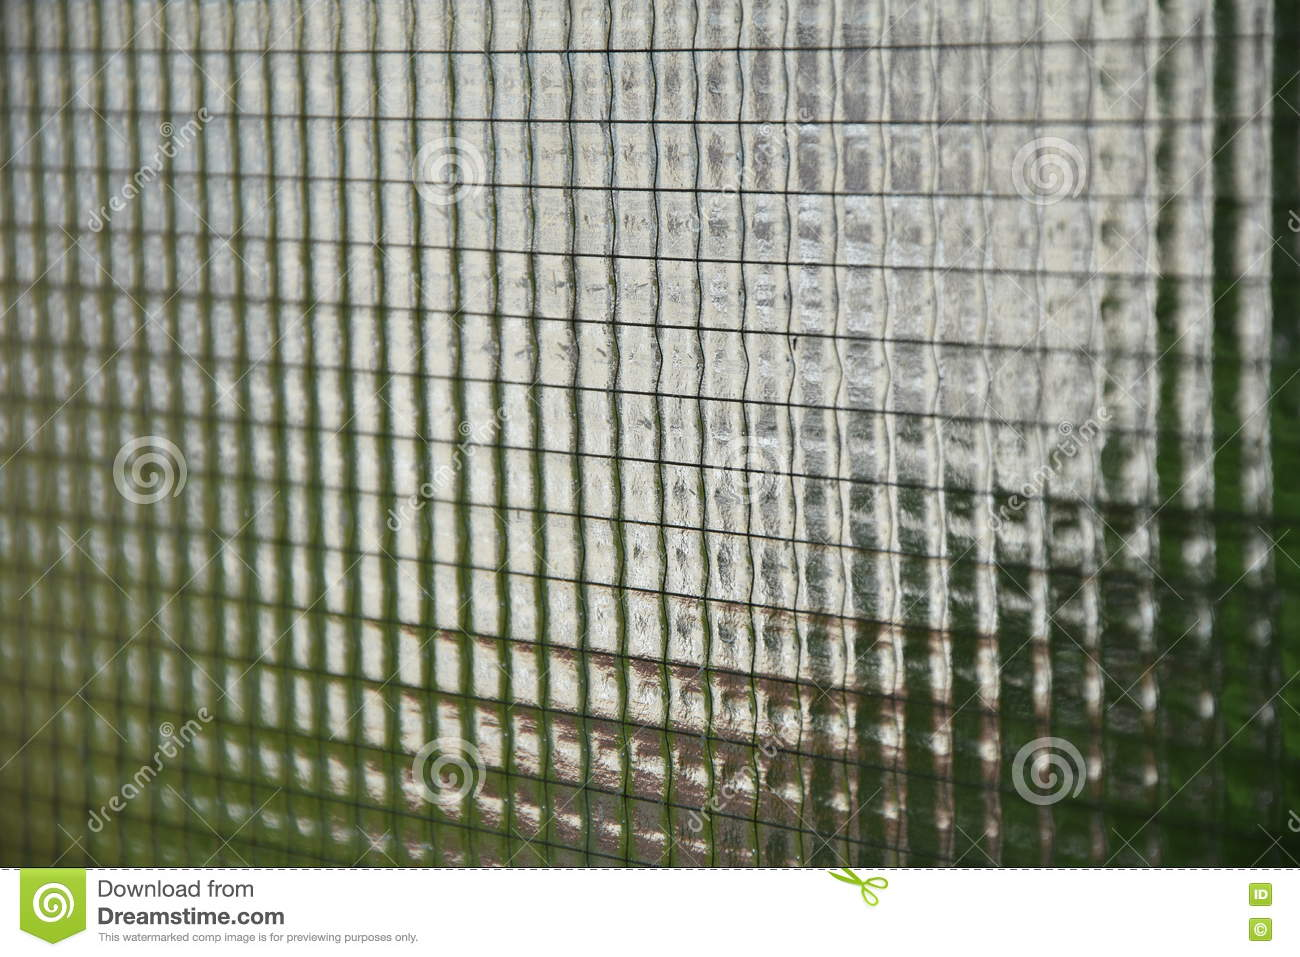 Wired glass texture stock photo. Image of glass, surface - 64036206